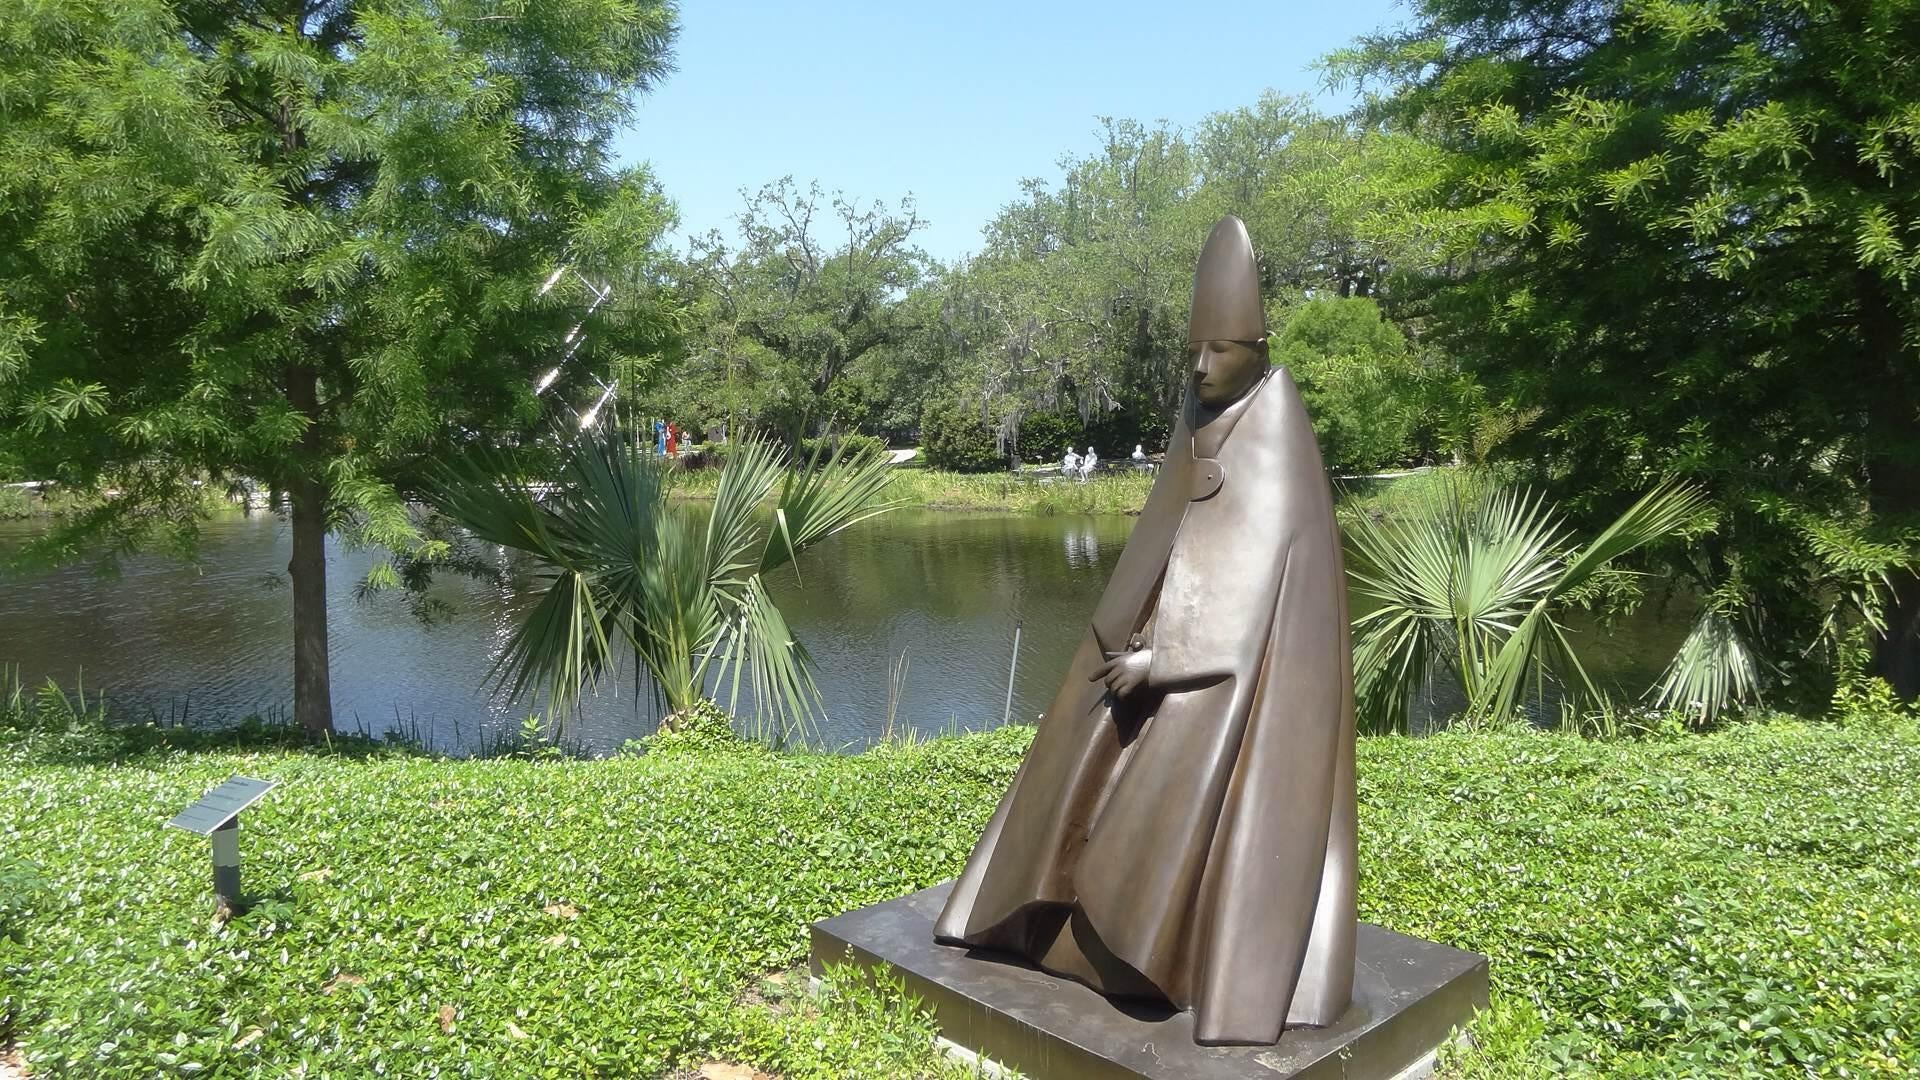 Statue in The Sydney and Walda Besthoff Sculpture Garden at NOMA